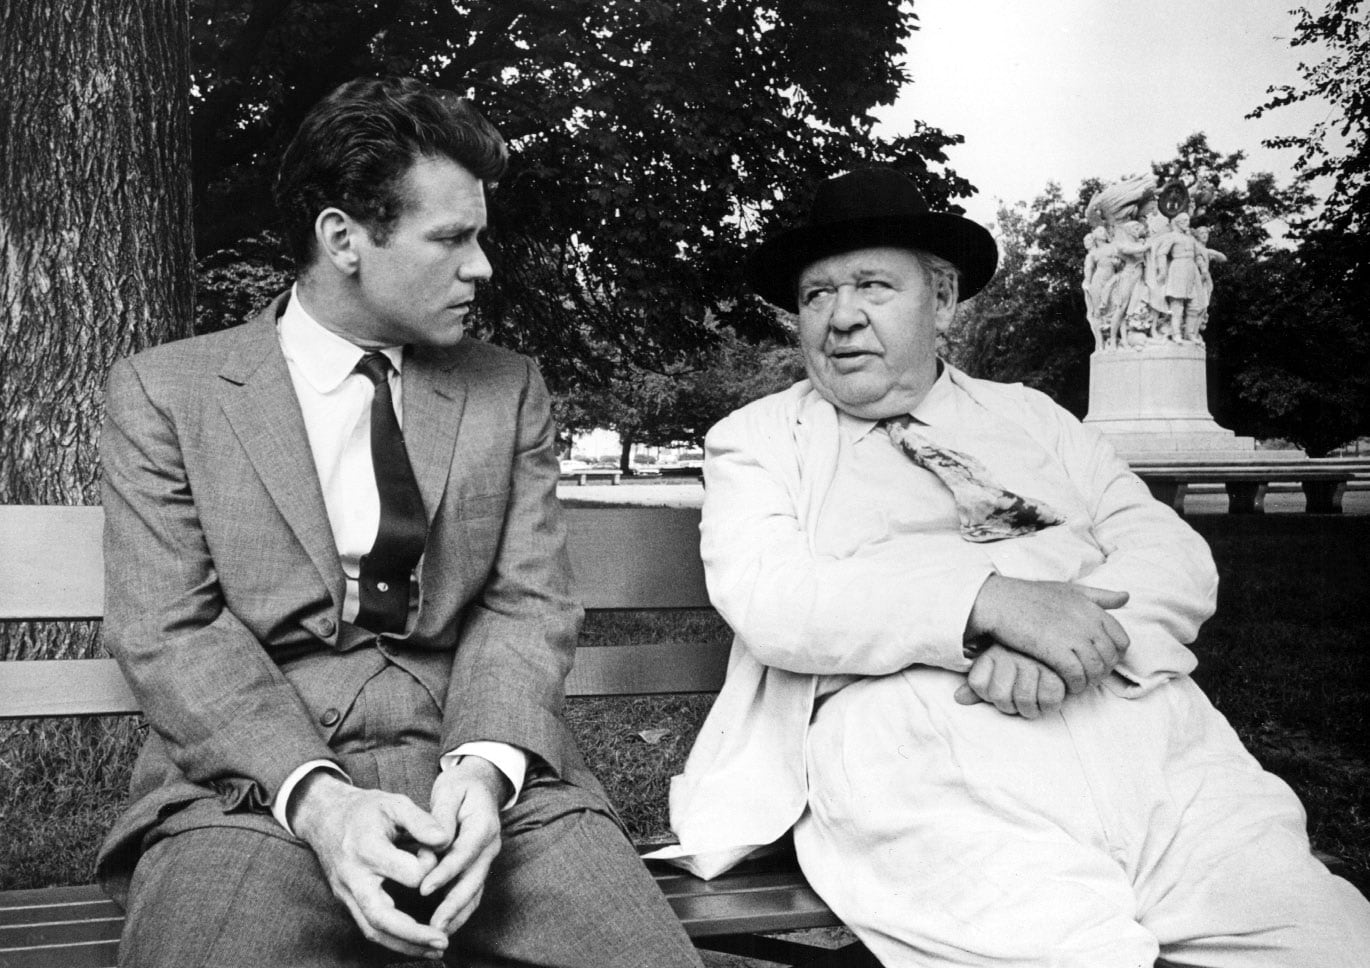 1558945782141_C_Laughton.jpg - Don Murray​ e Charles Laughton nel 1962 in Tempesta su Washington